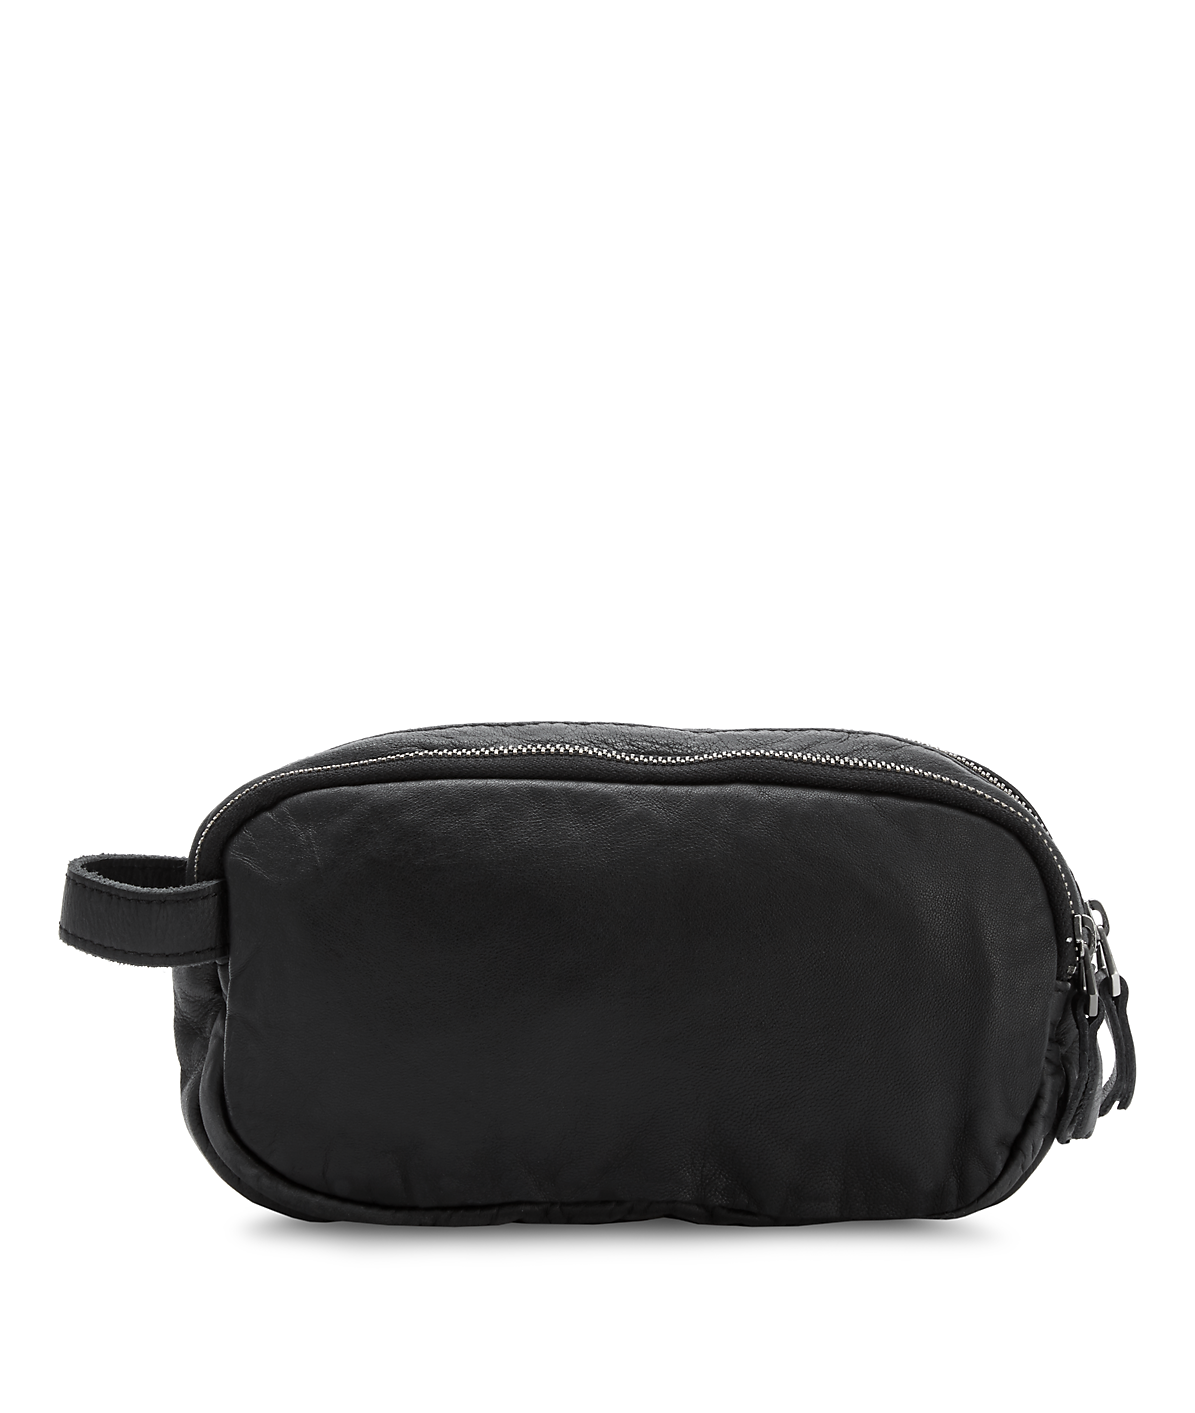 Cosmetic bag Giselle F7 from liebeskind